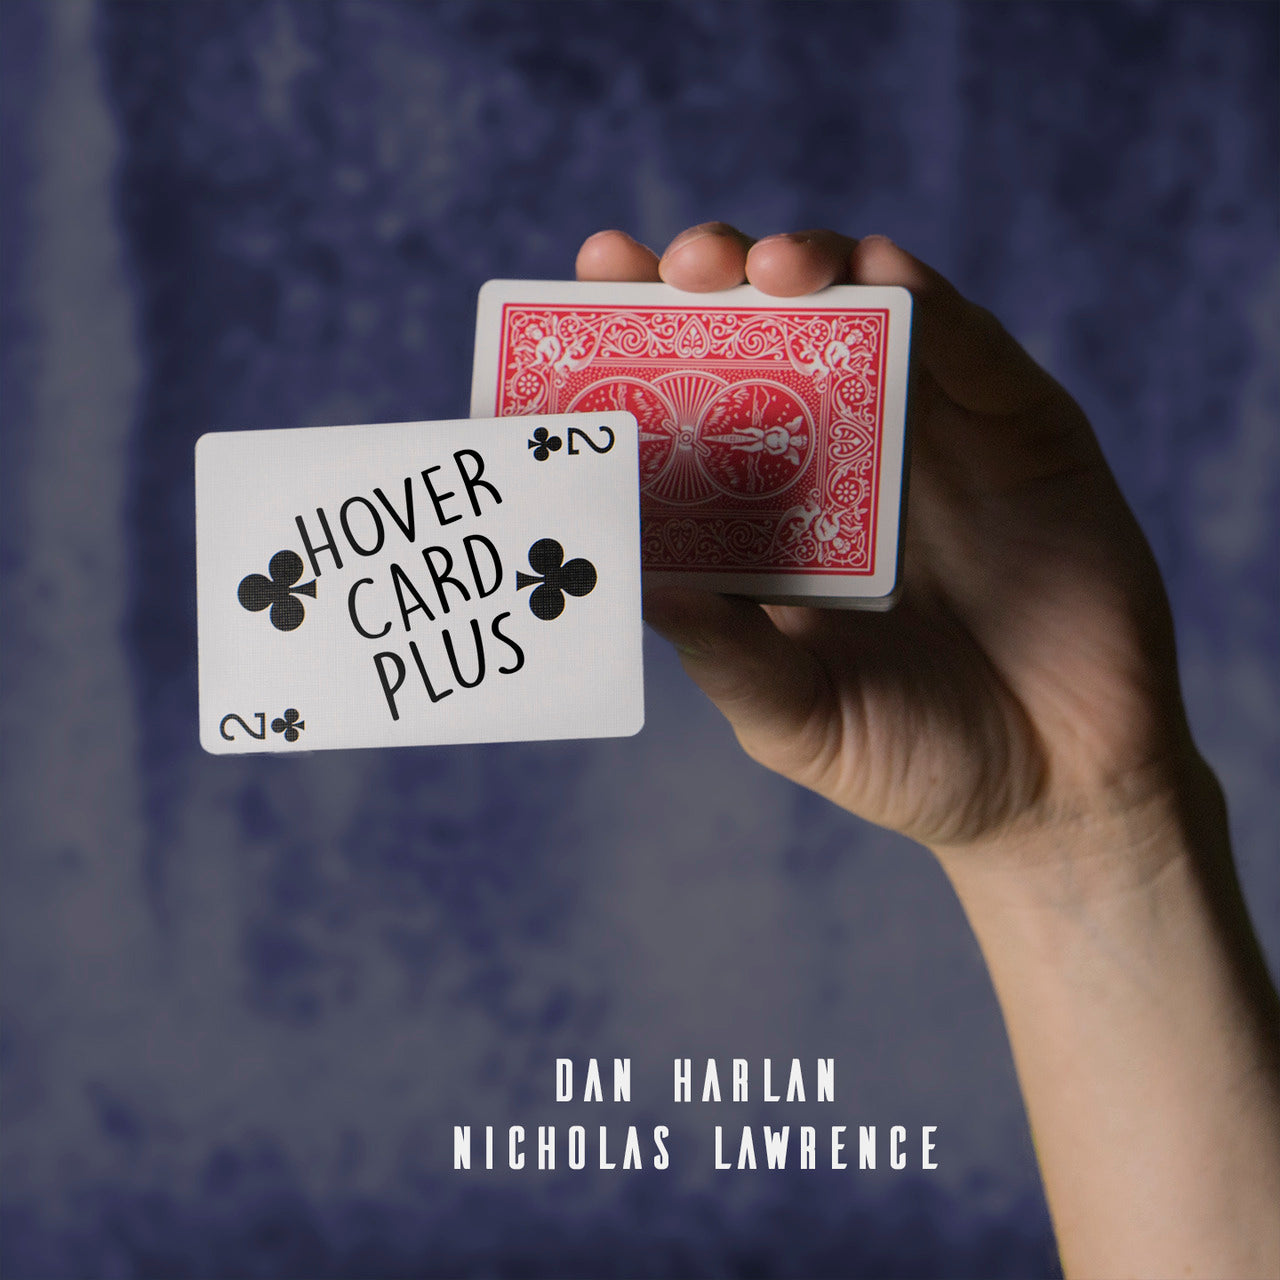 Hover Card Plus by Dan Harlan and Nicholas Lawrence - Mystique Factory